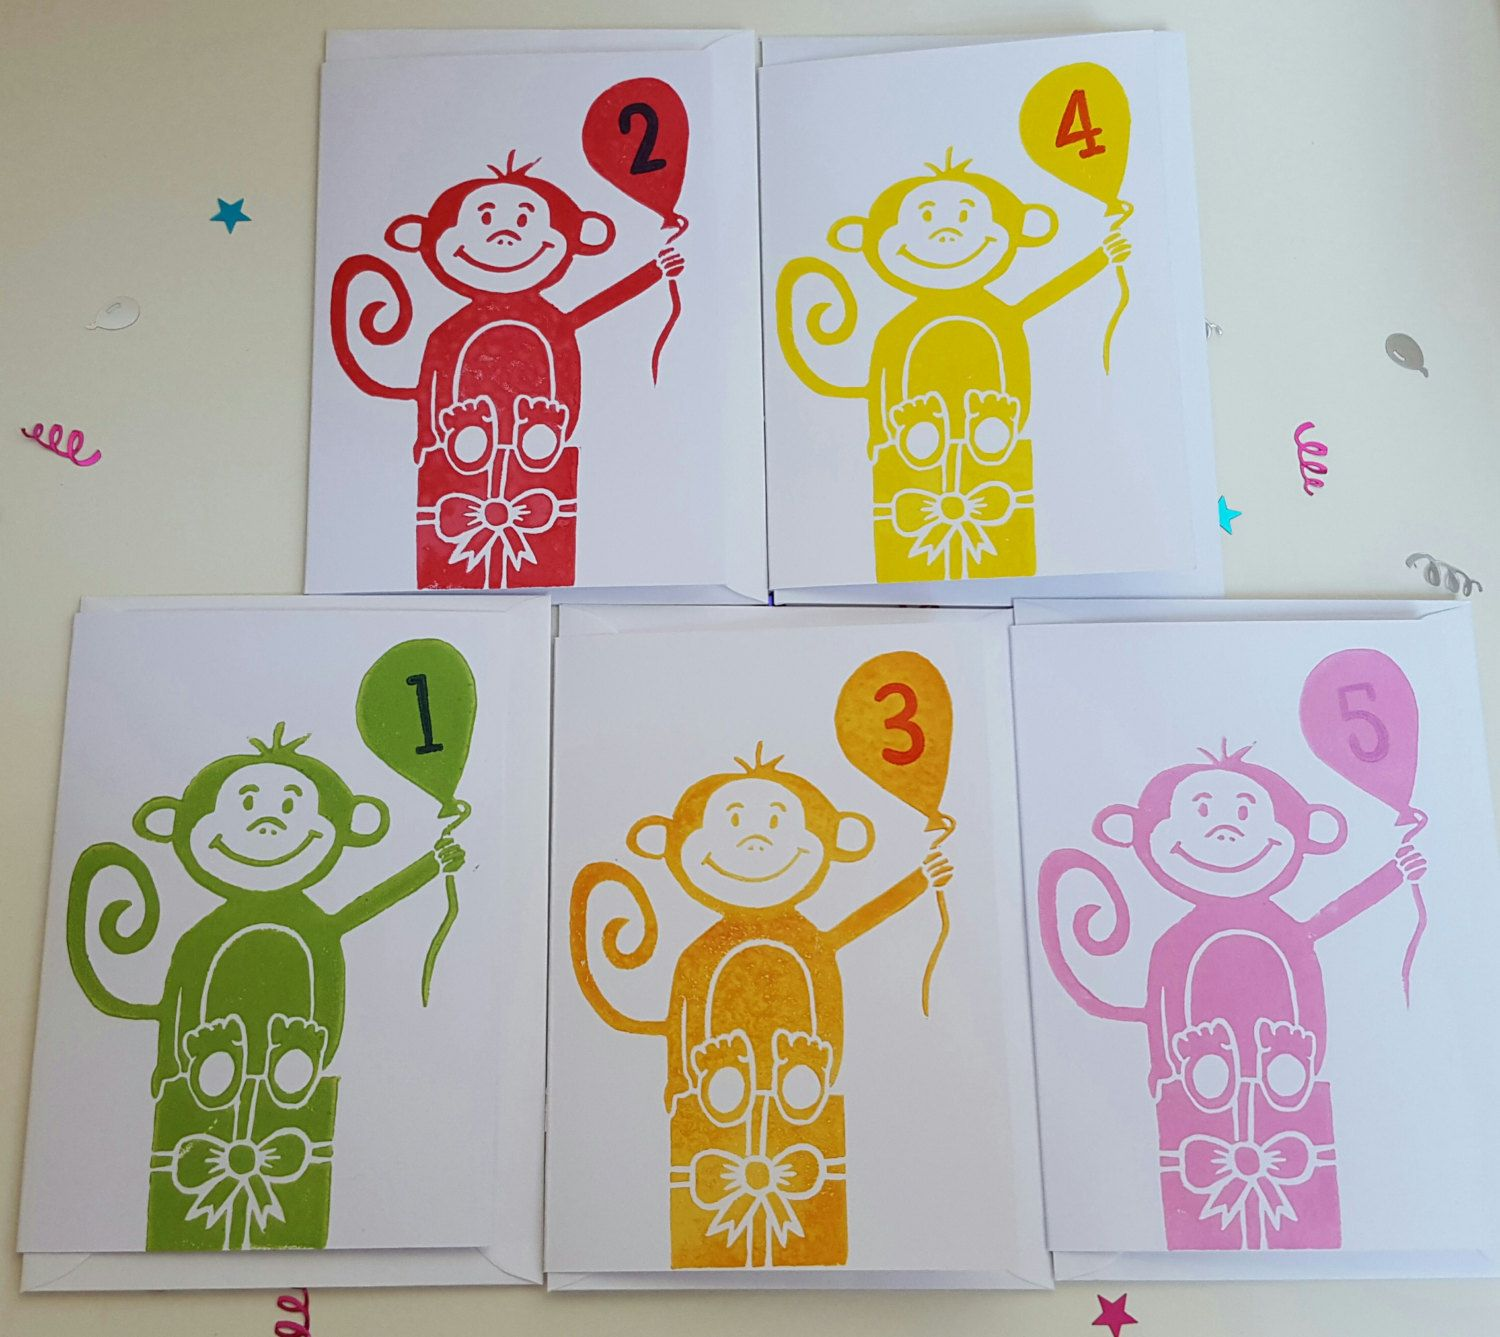 Cheeky happy monkey hand printed lino cut childrenus birthday card